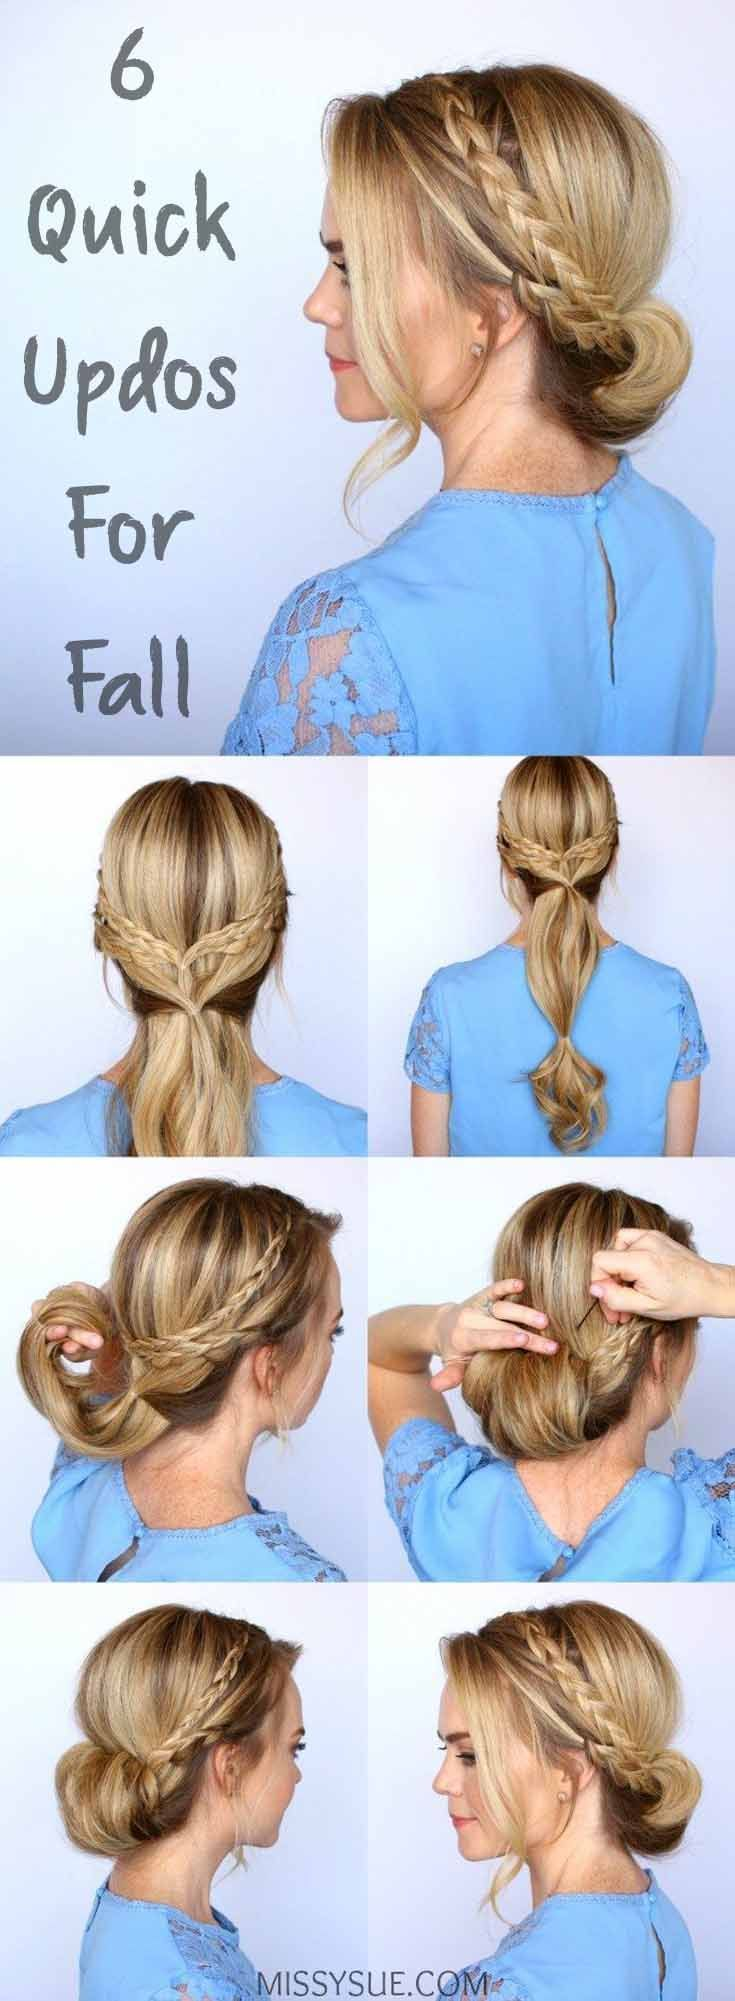 Updos hairstyles are always trendy and popular and the internet is